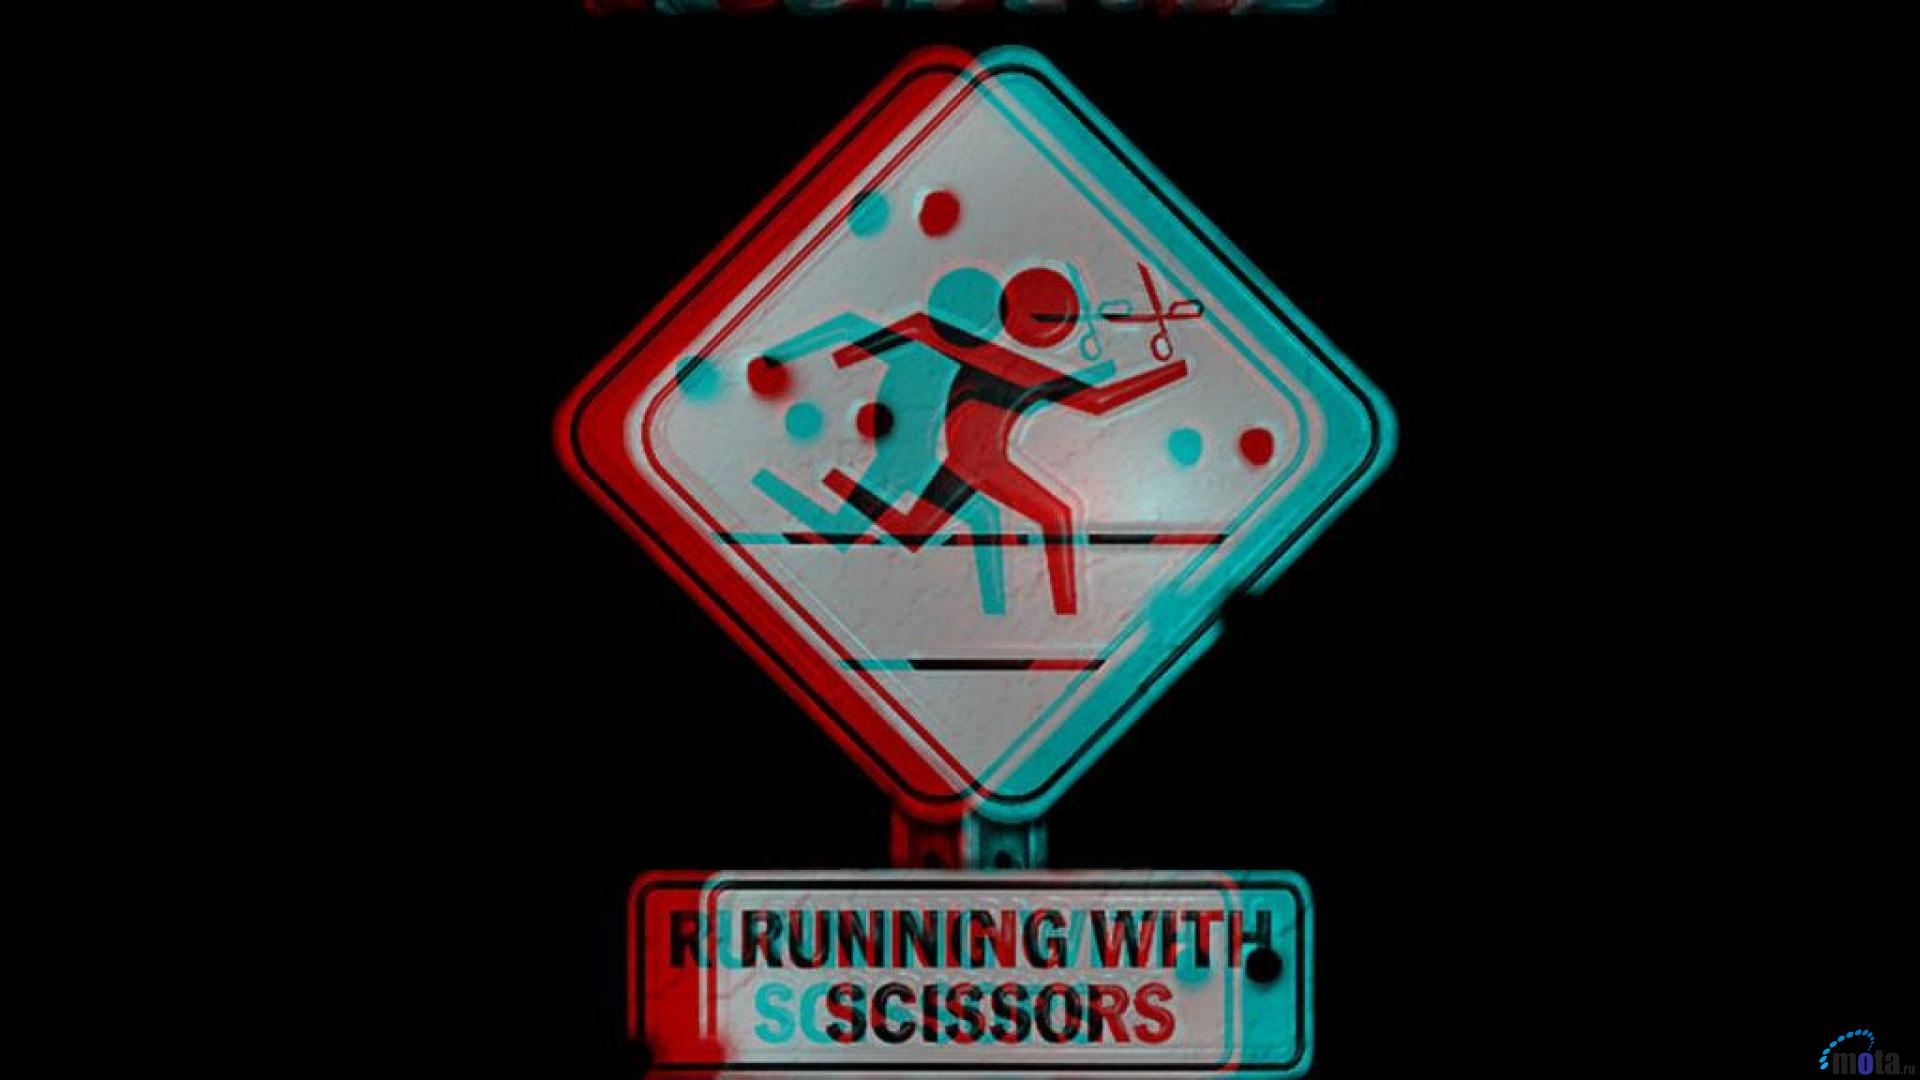 running with scissors thesis Find this pin and more on displaying your scissors by racing knife making jogging trail running design store design digital marketing innovation thesis.